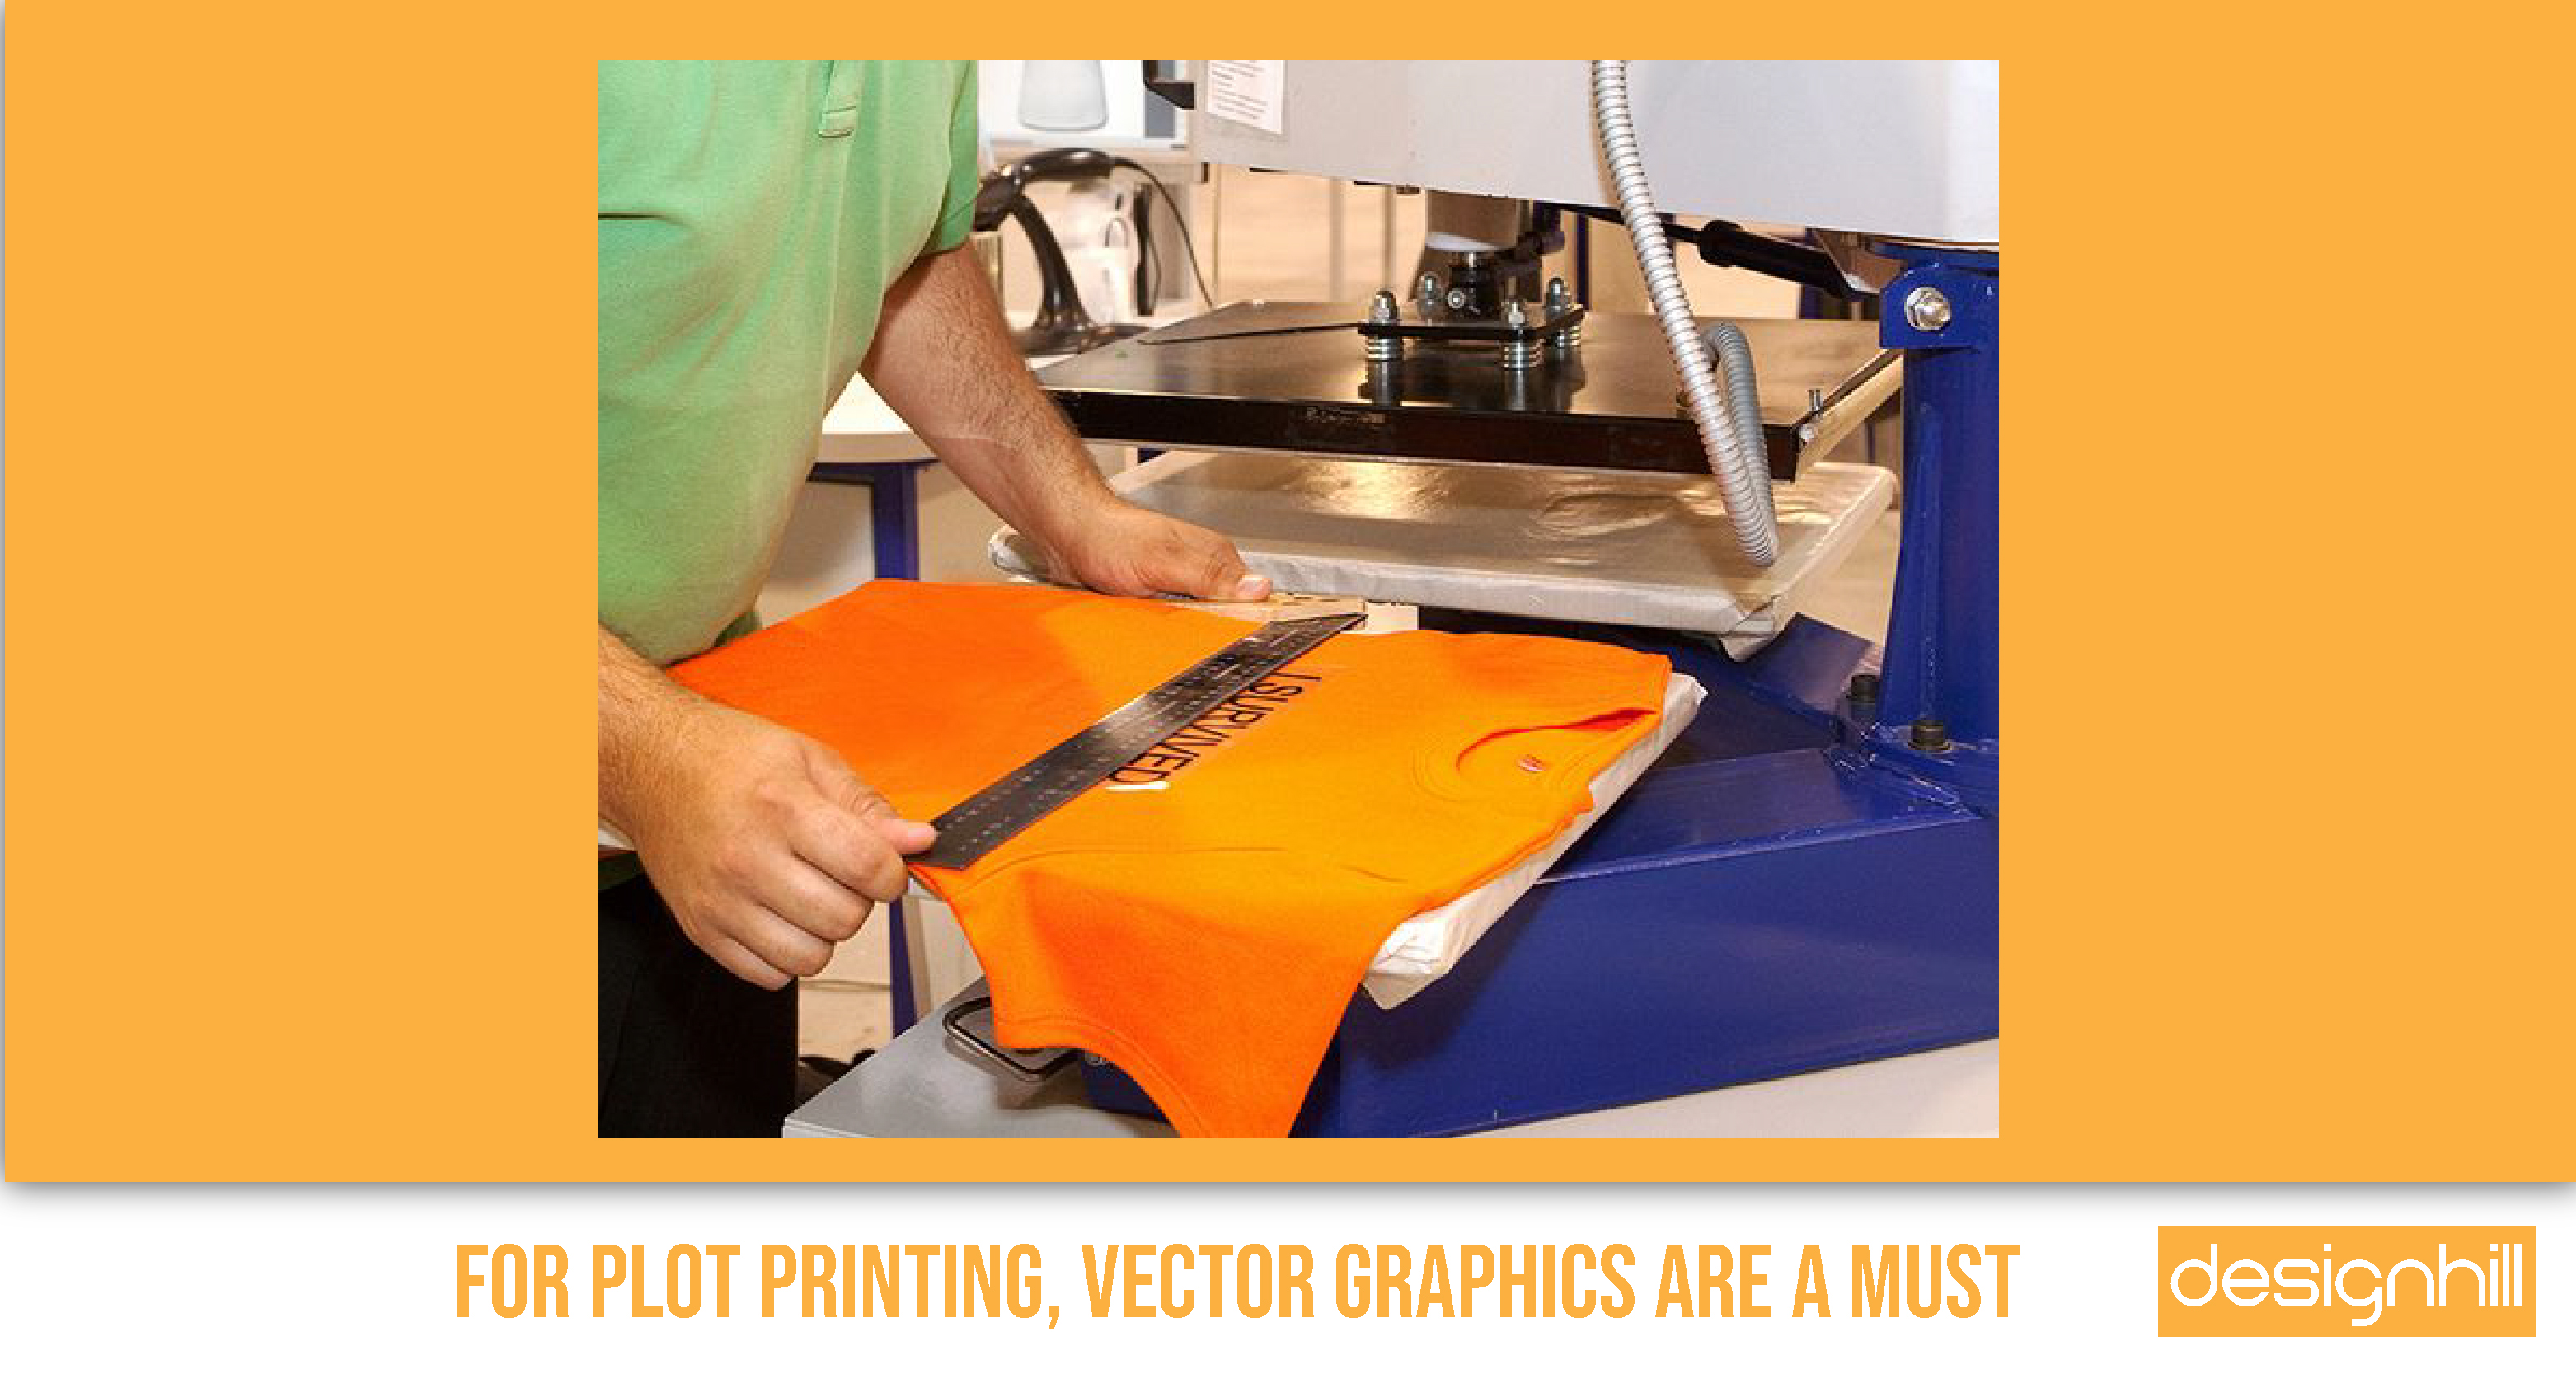 For Plot Printing, Vector Graphics Are A Must